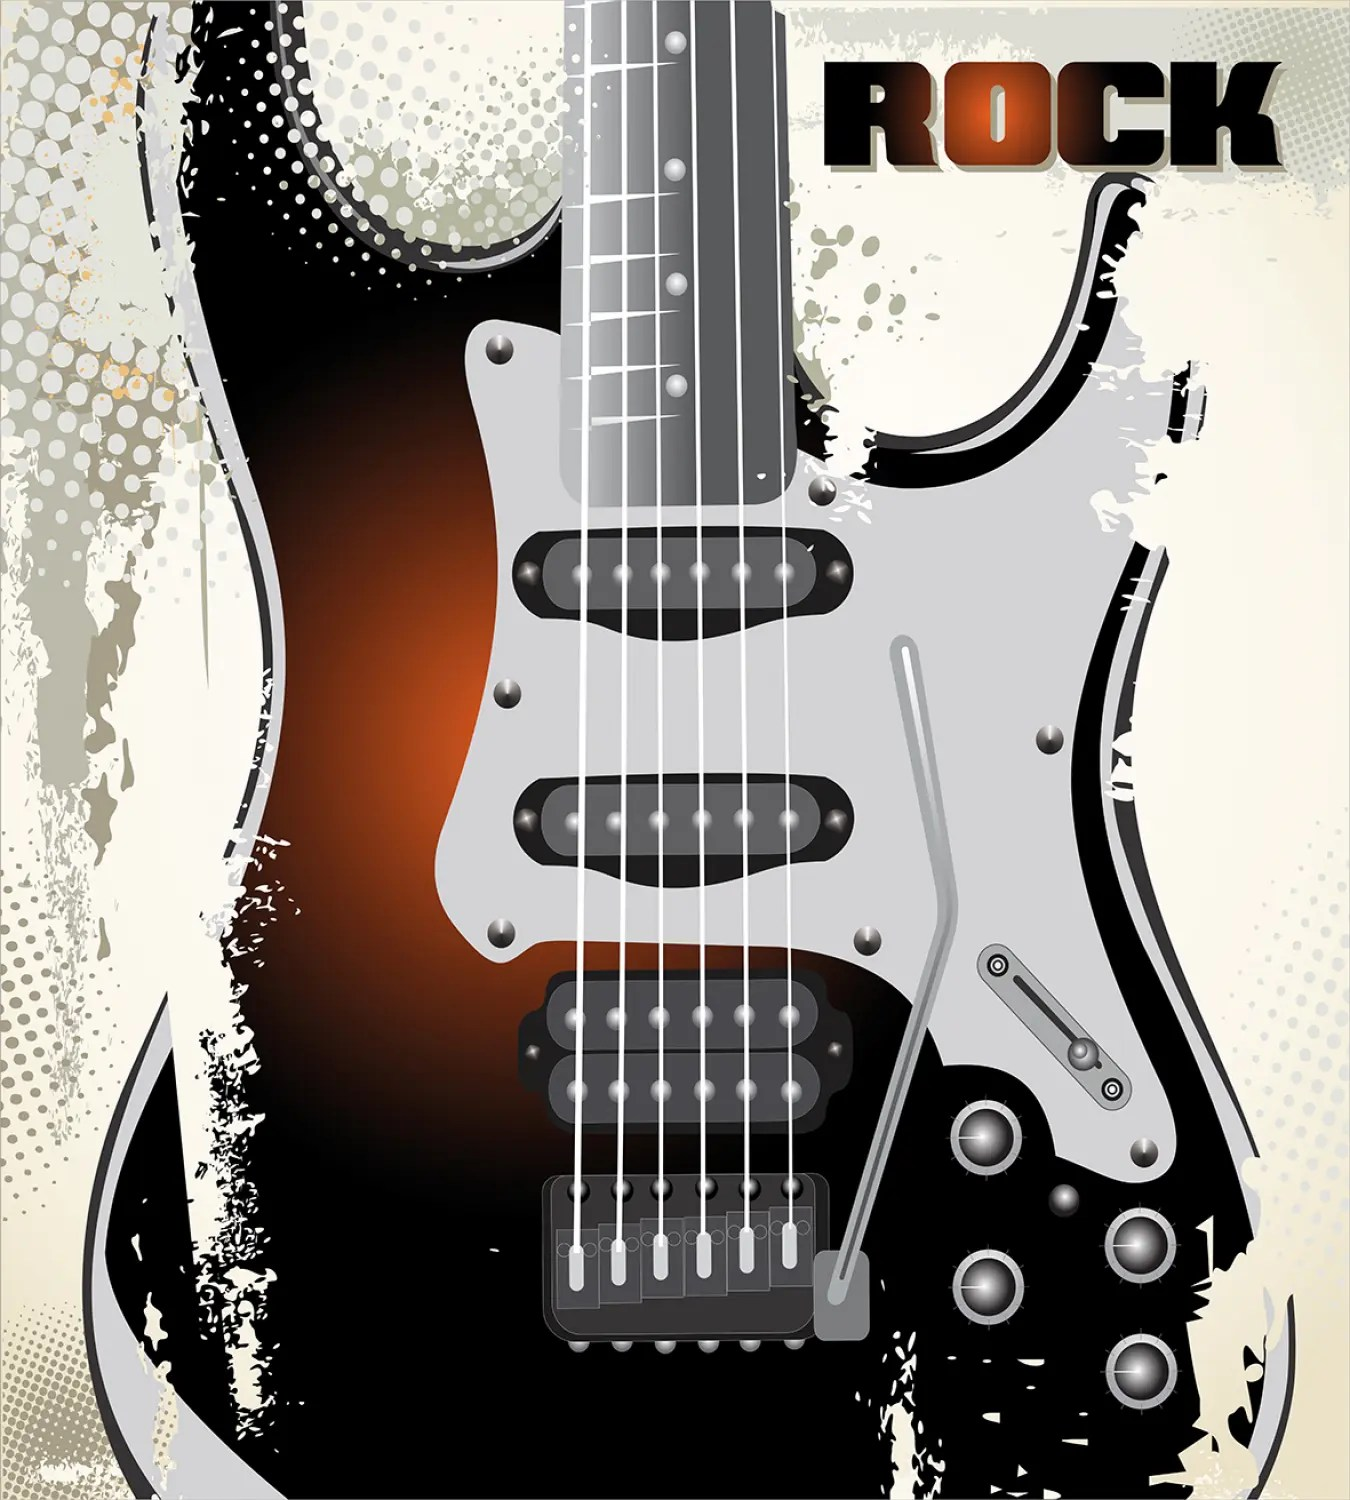 Rock Music Cover Details About Rock Music Duvet Cover Set With Pillow Shams Retro Grunge Guitar Print